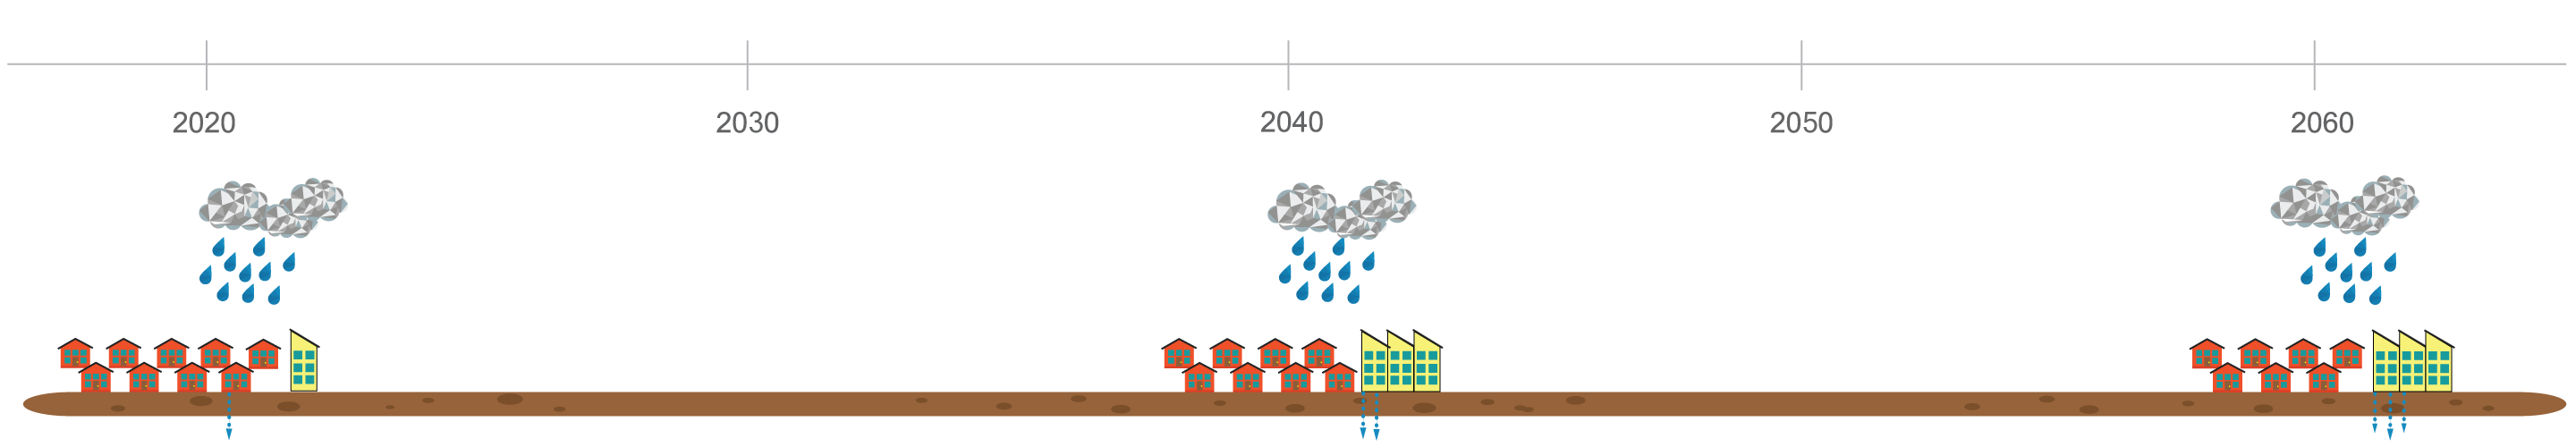 Adaptive Flood Timeline two